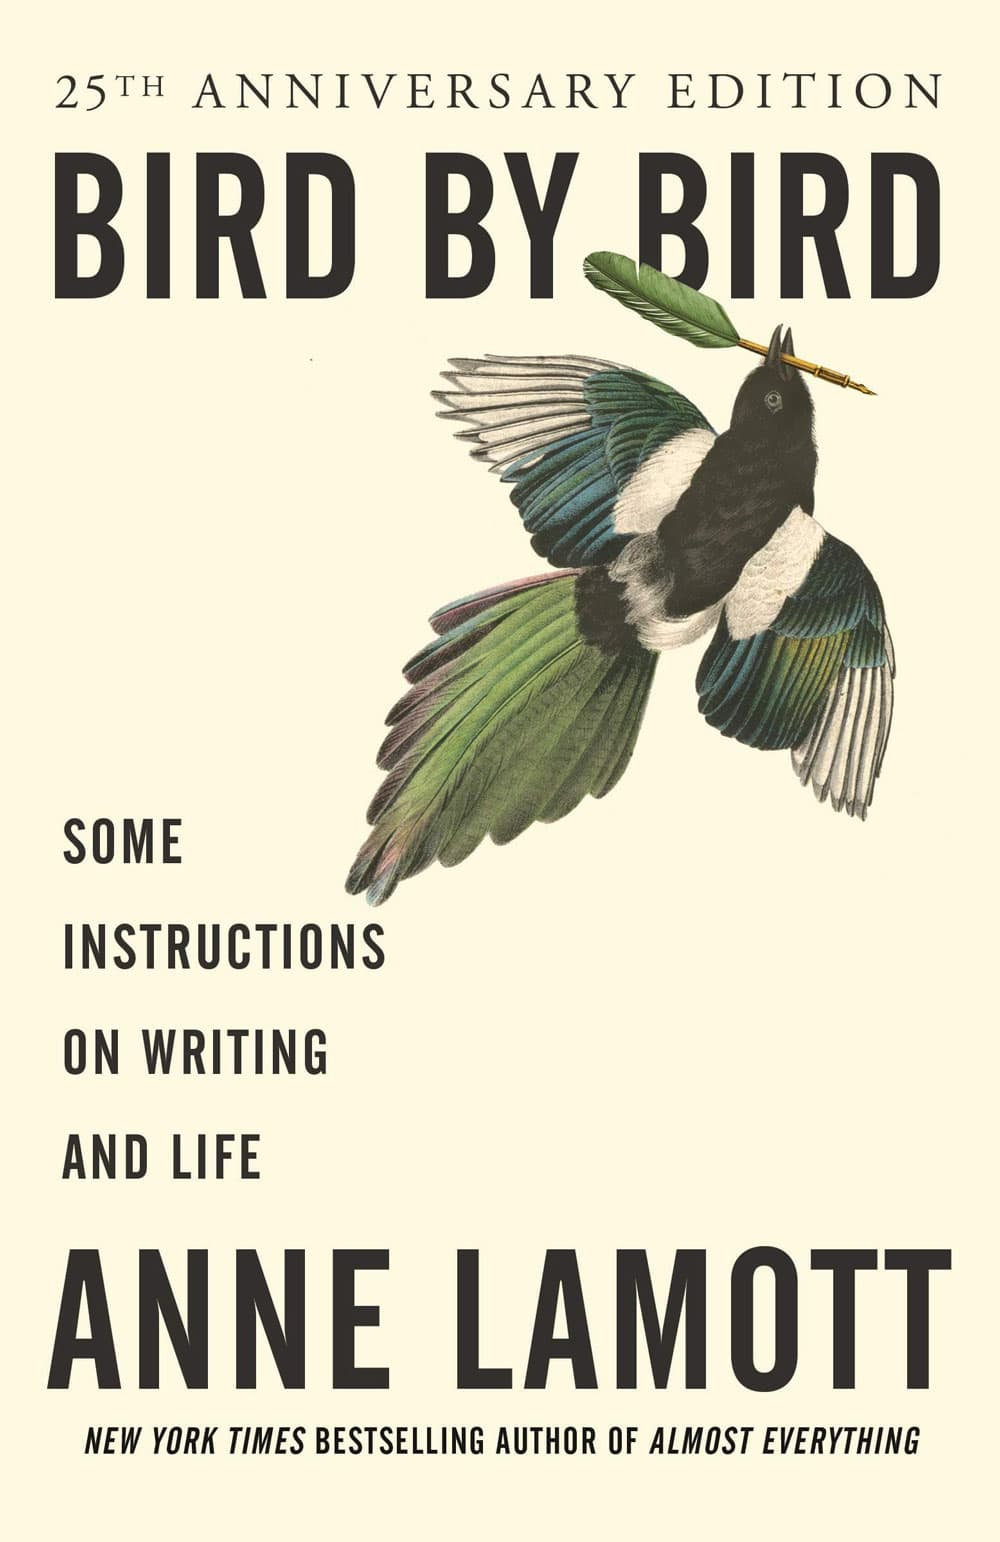 The cover of Bird by Bird